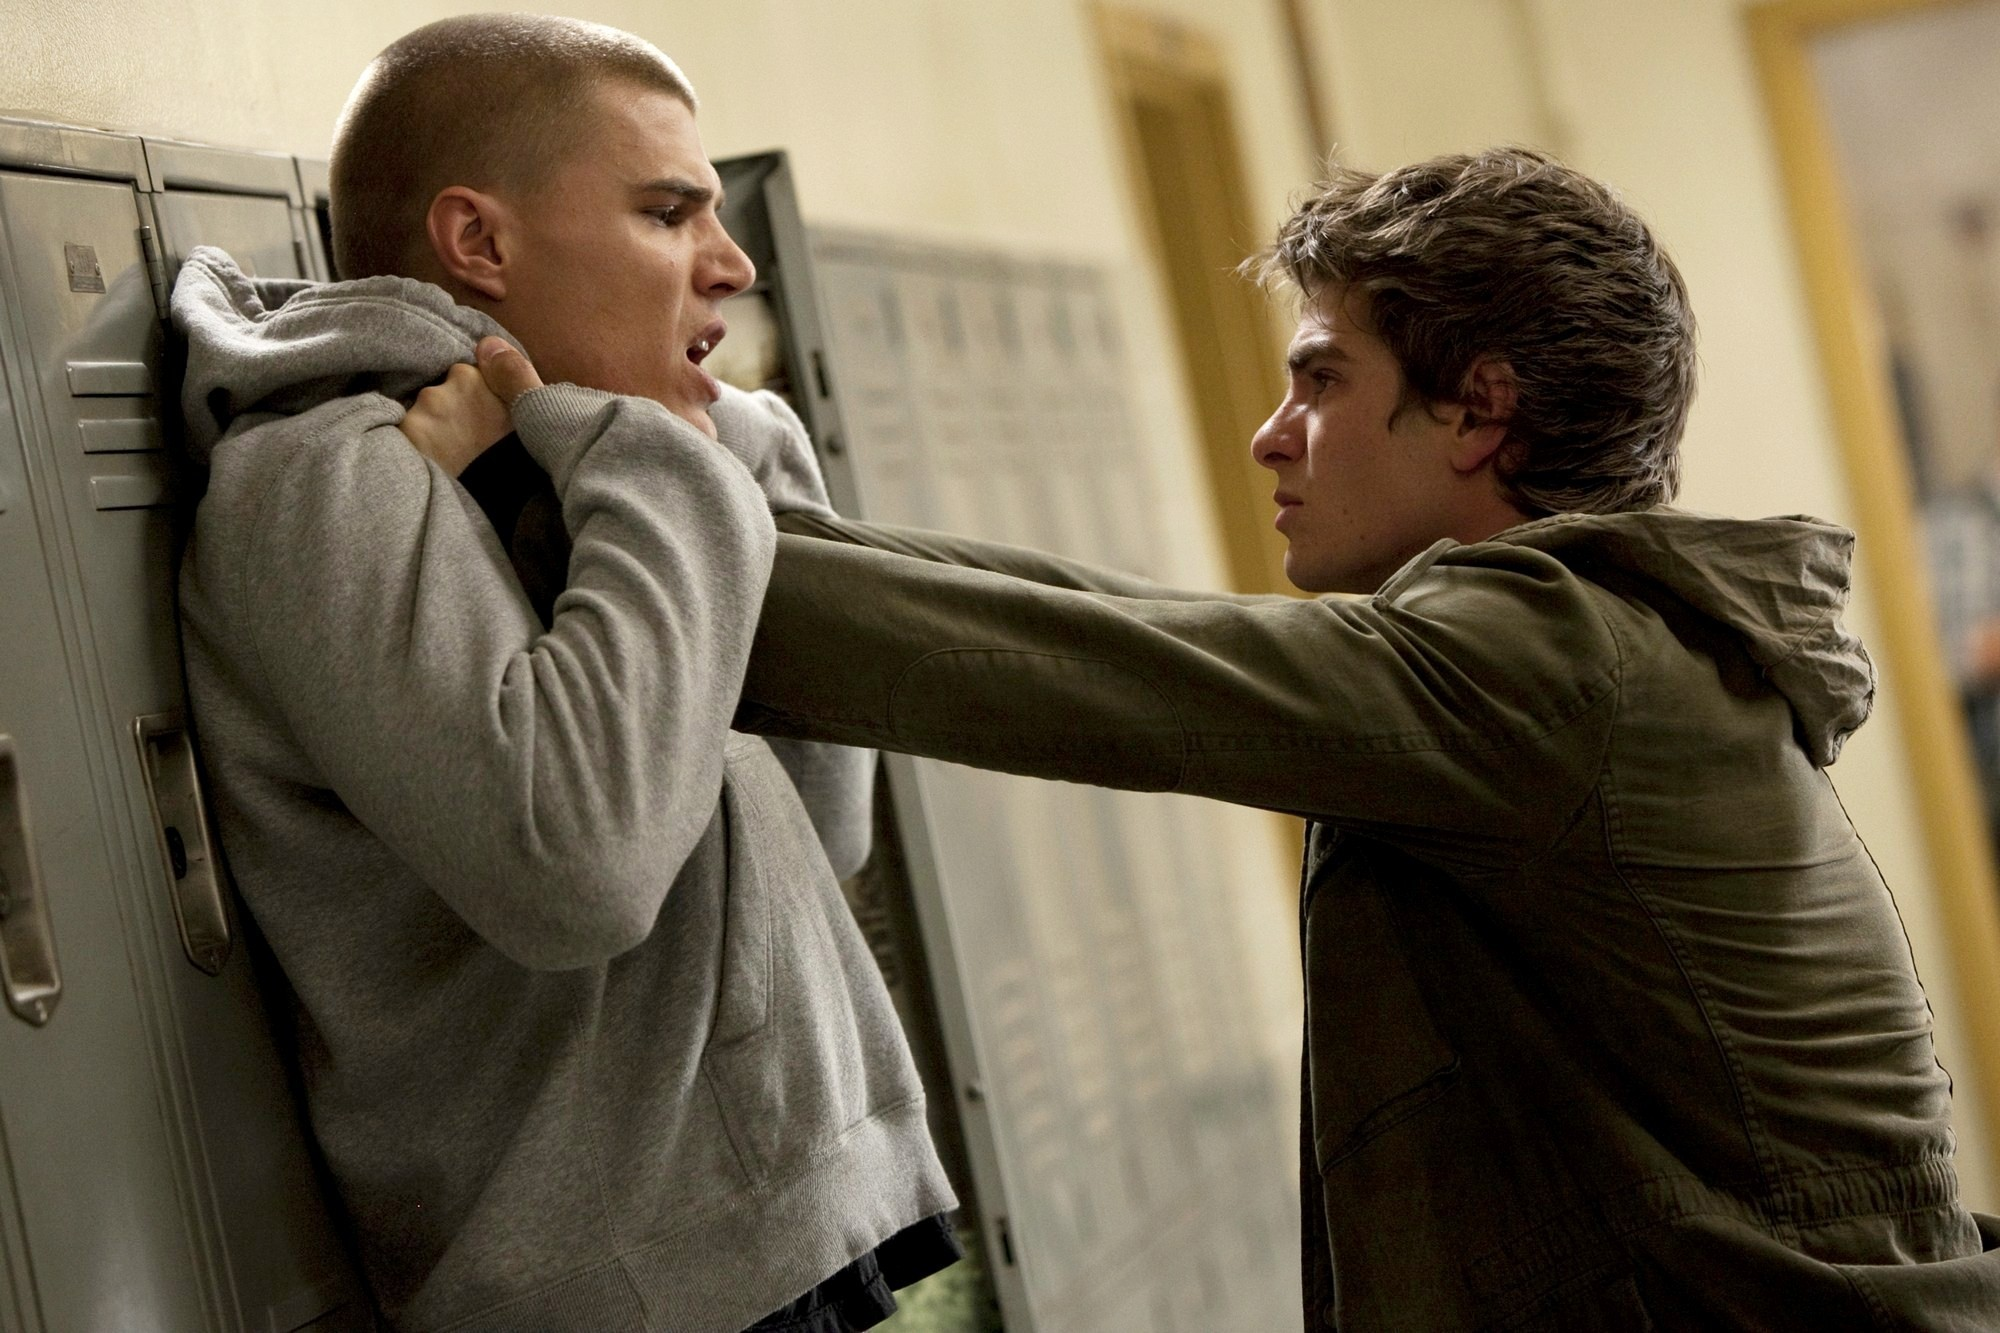 marvel - How is Spider-Man's identity a mystery when Peter is seen